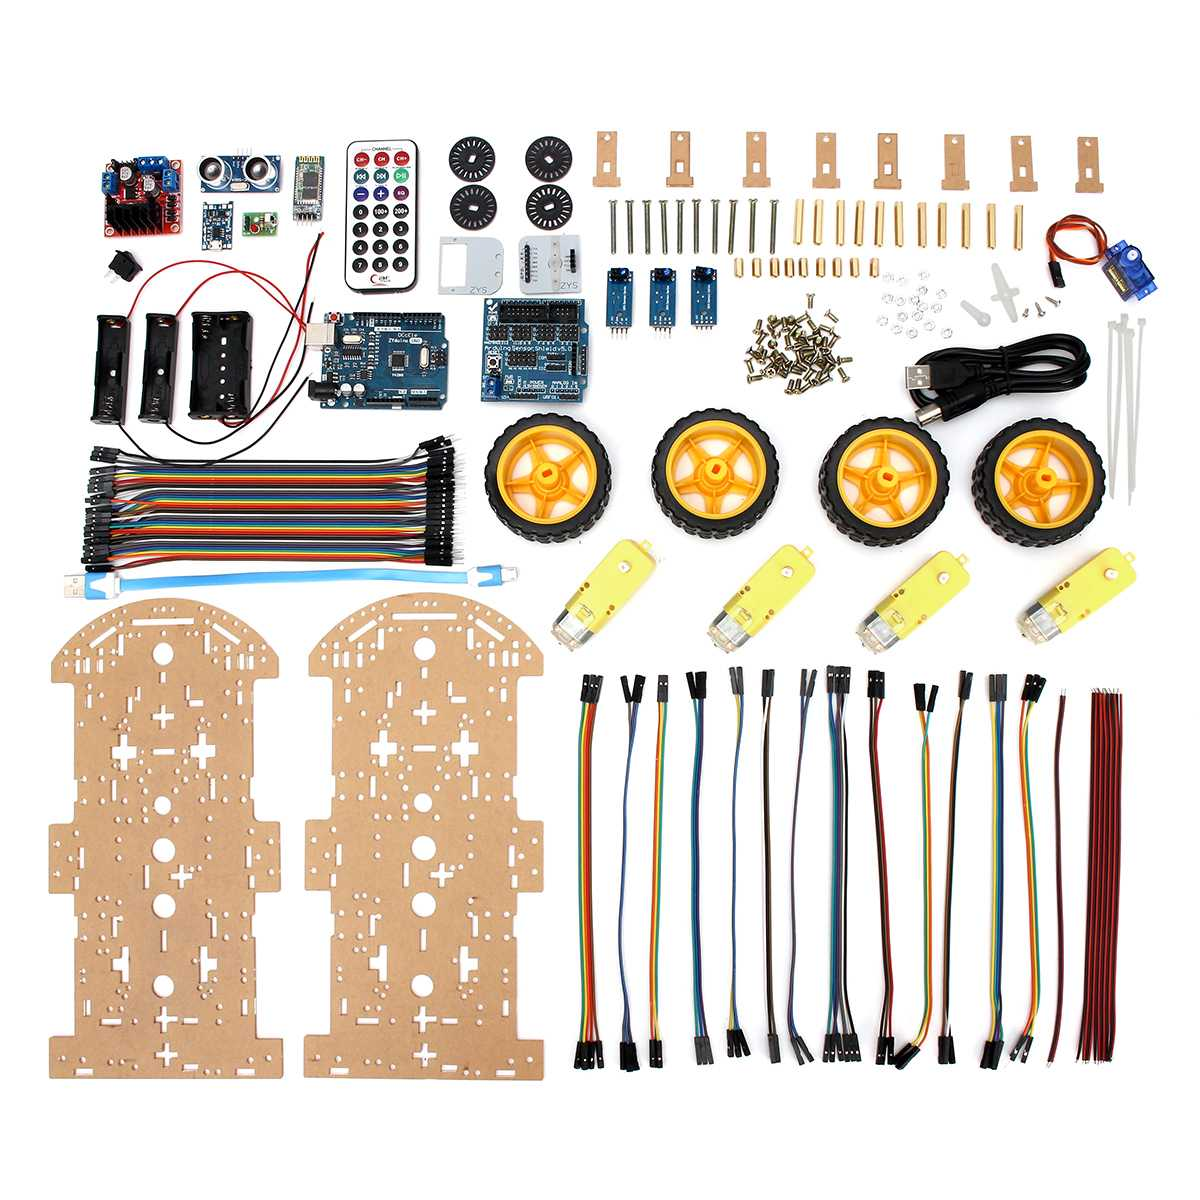 4WD Robot Smart Car Chassis Kits Avoidance Tracking Motor with Speed Encoder for Arduino DIY Education Robot Smart Car Kit